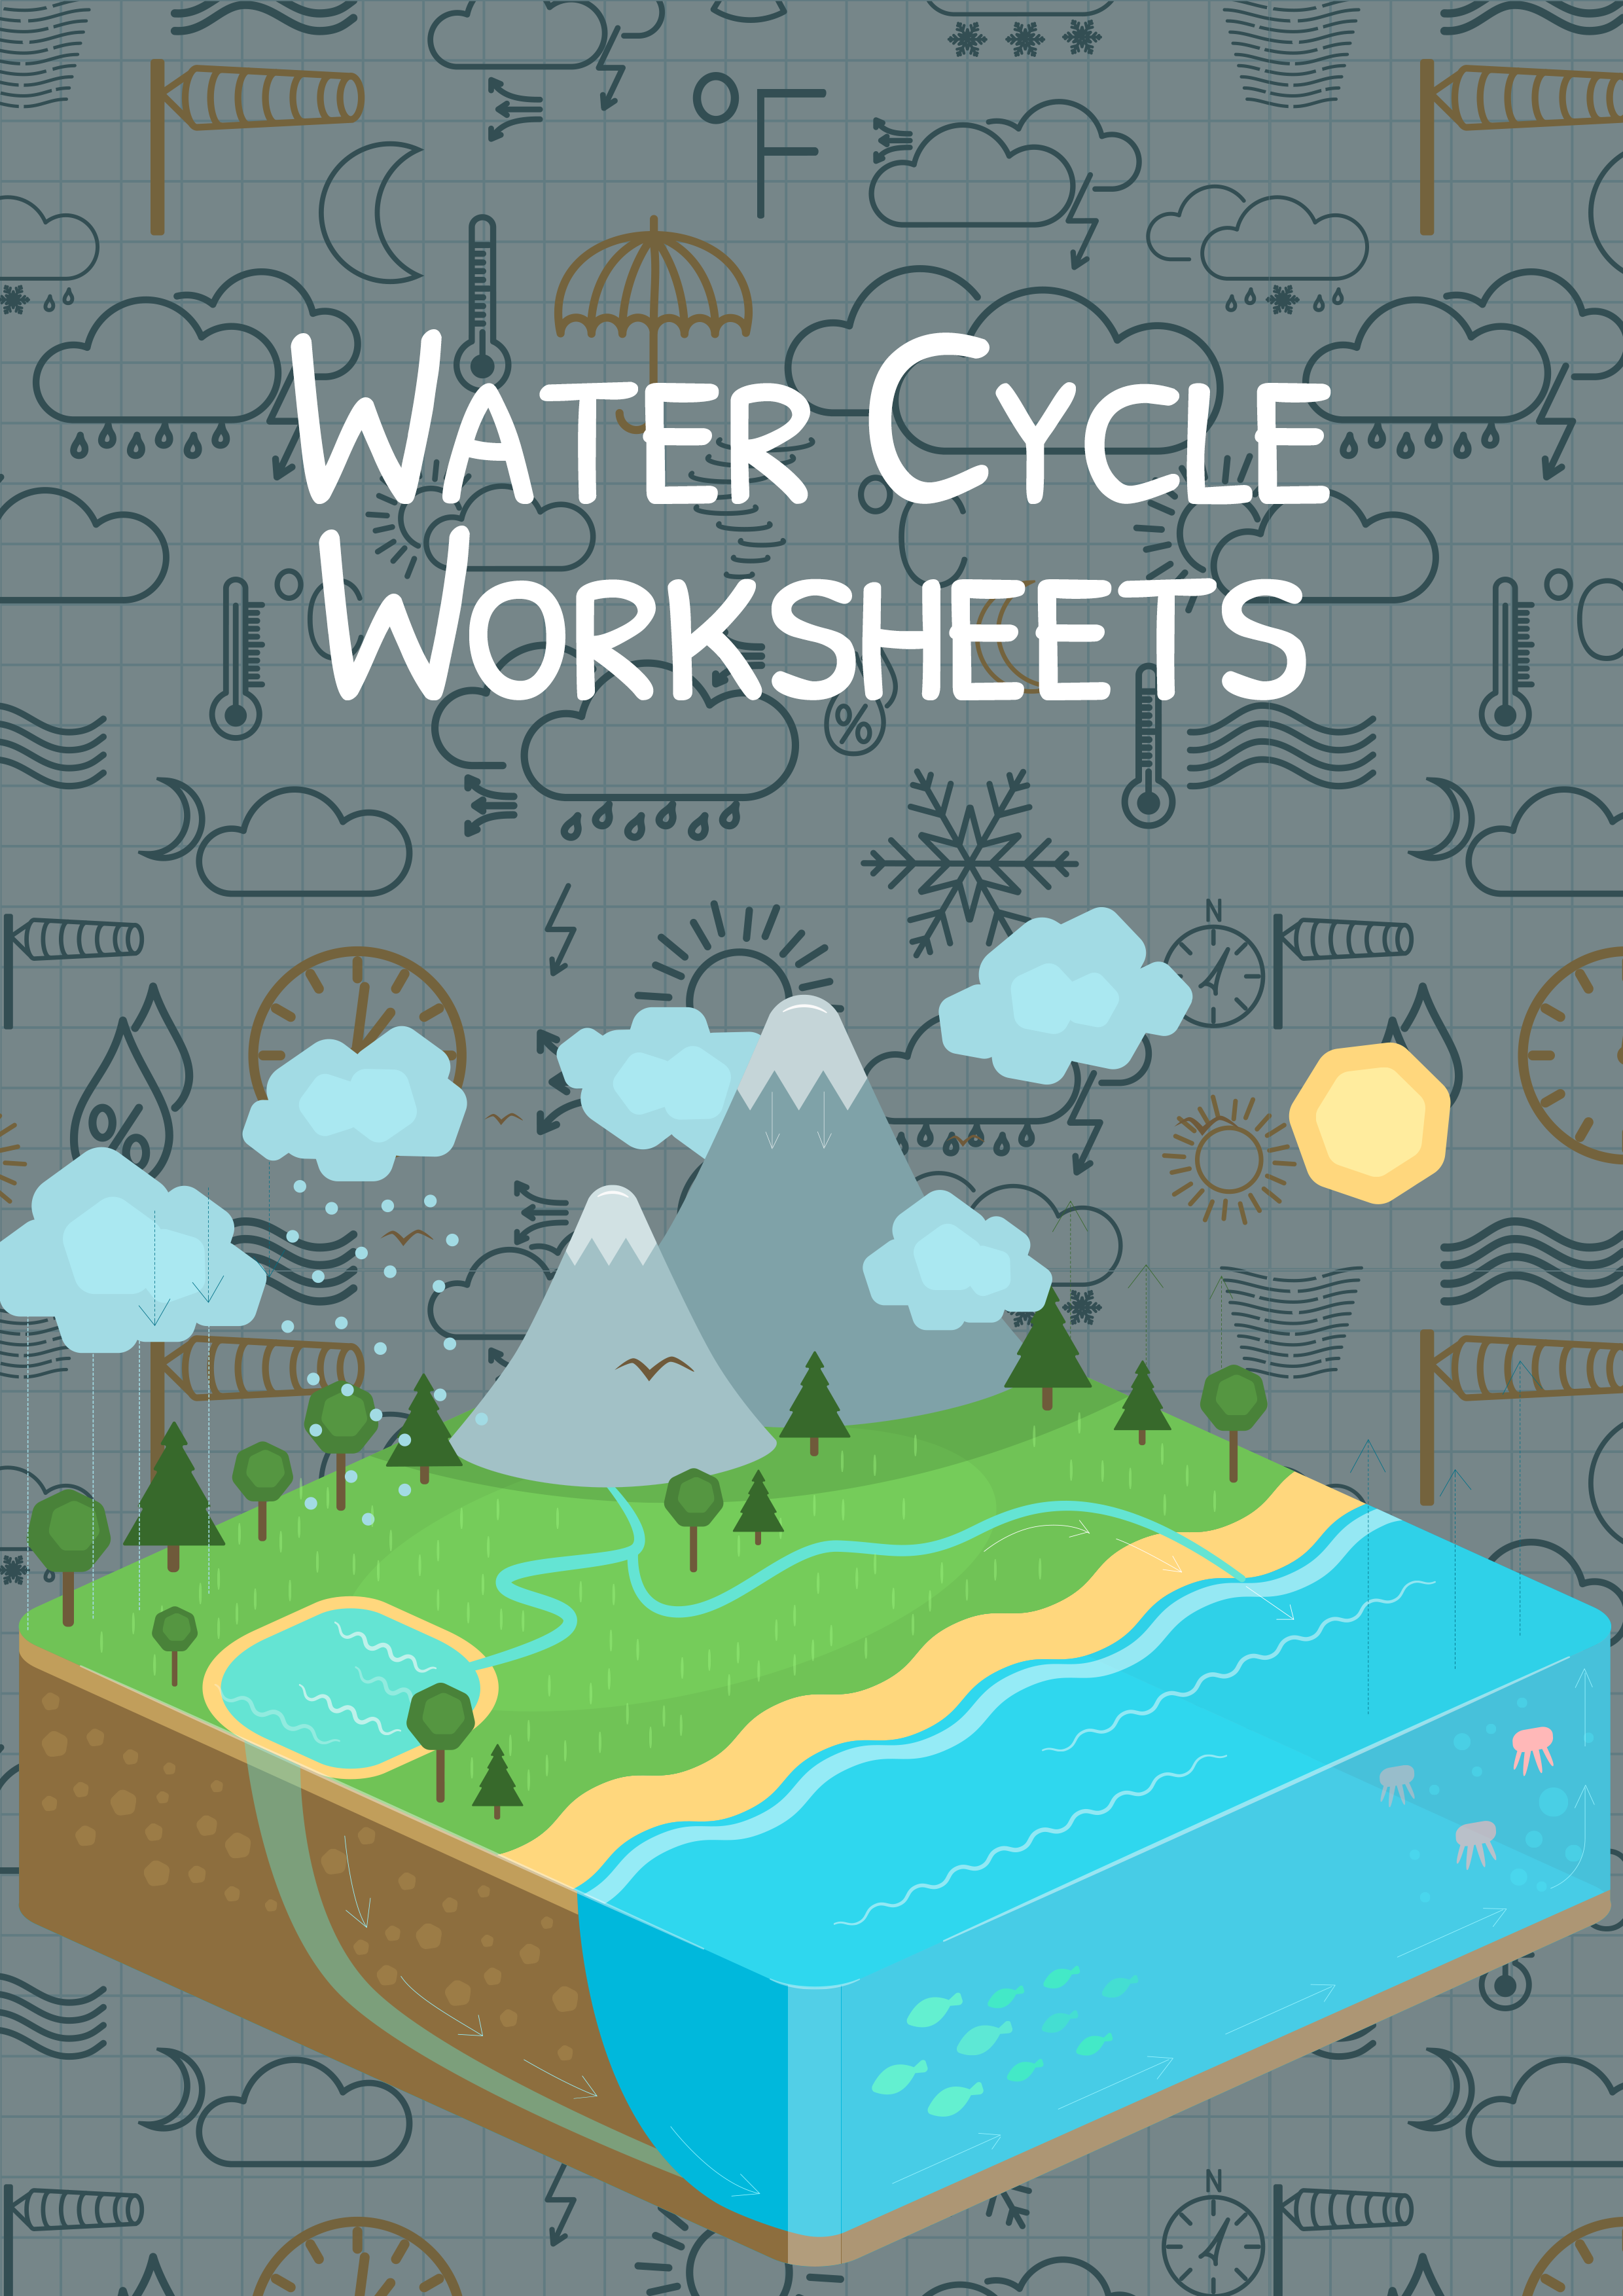 The Water Cycle Worksheet for Kids | Water Cycle Summary | Health ...